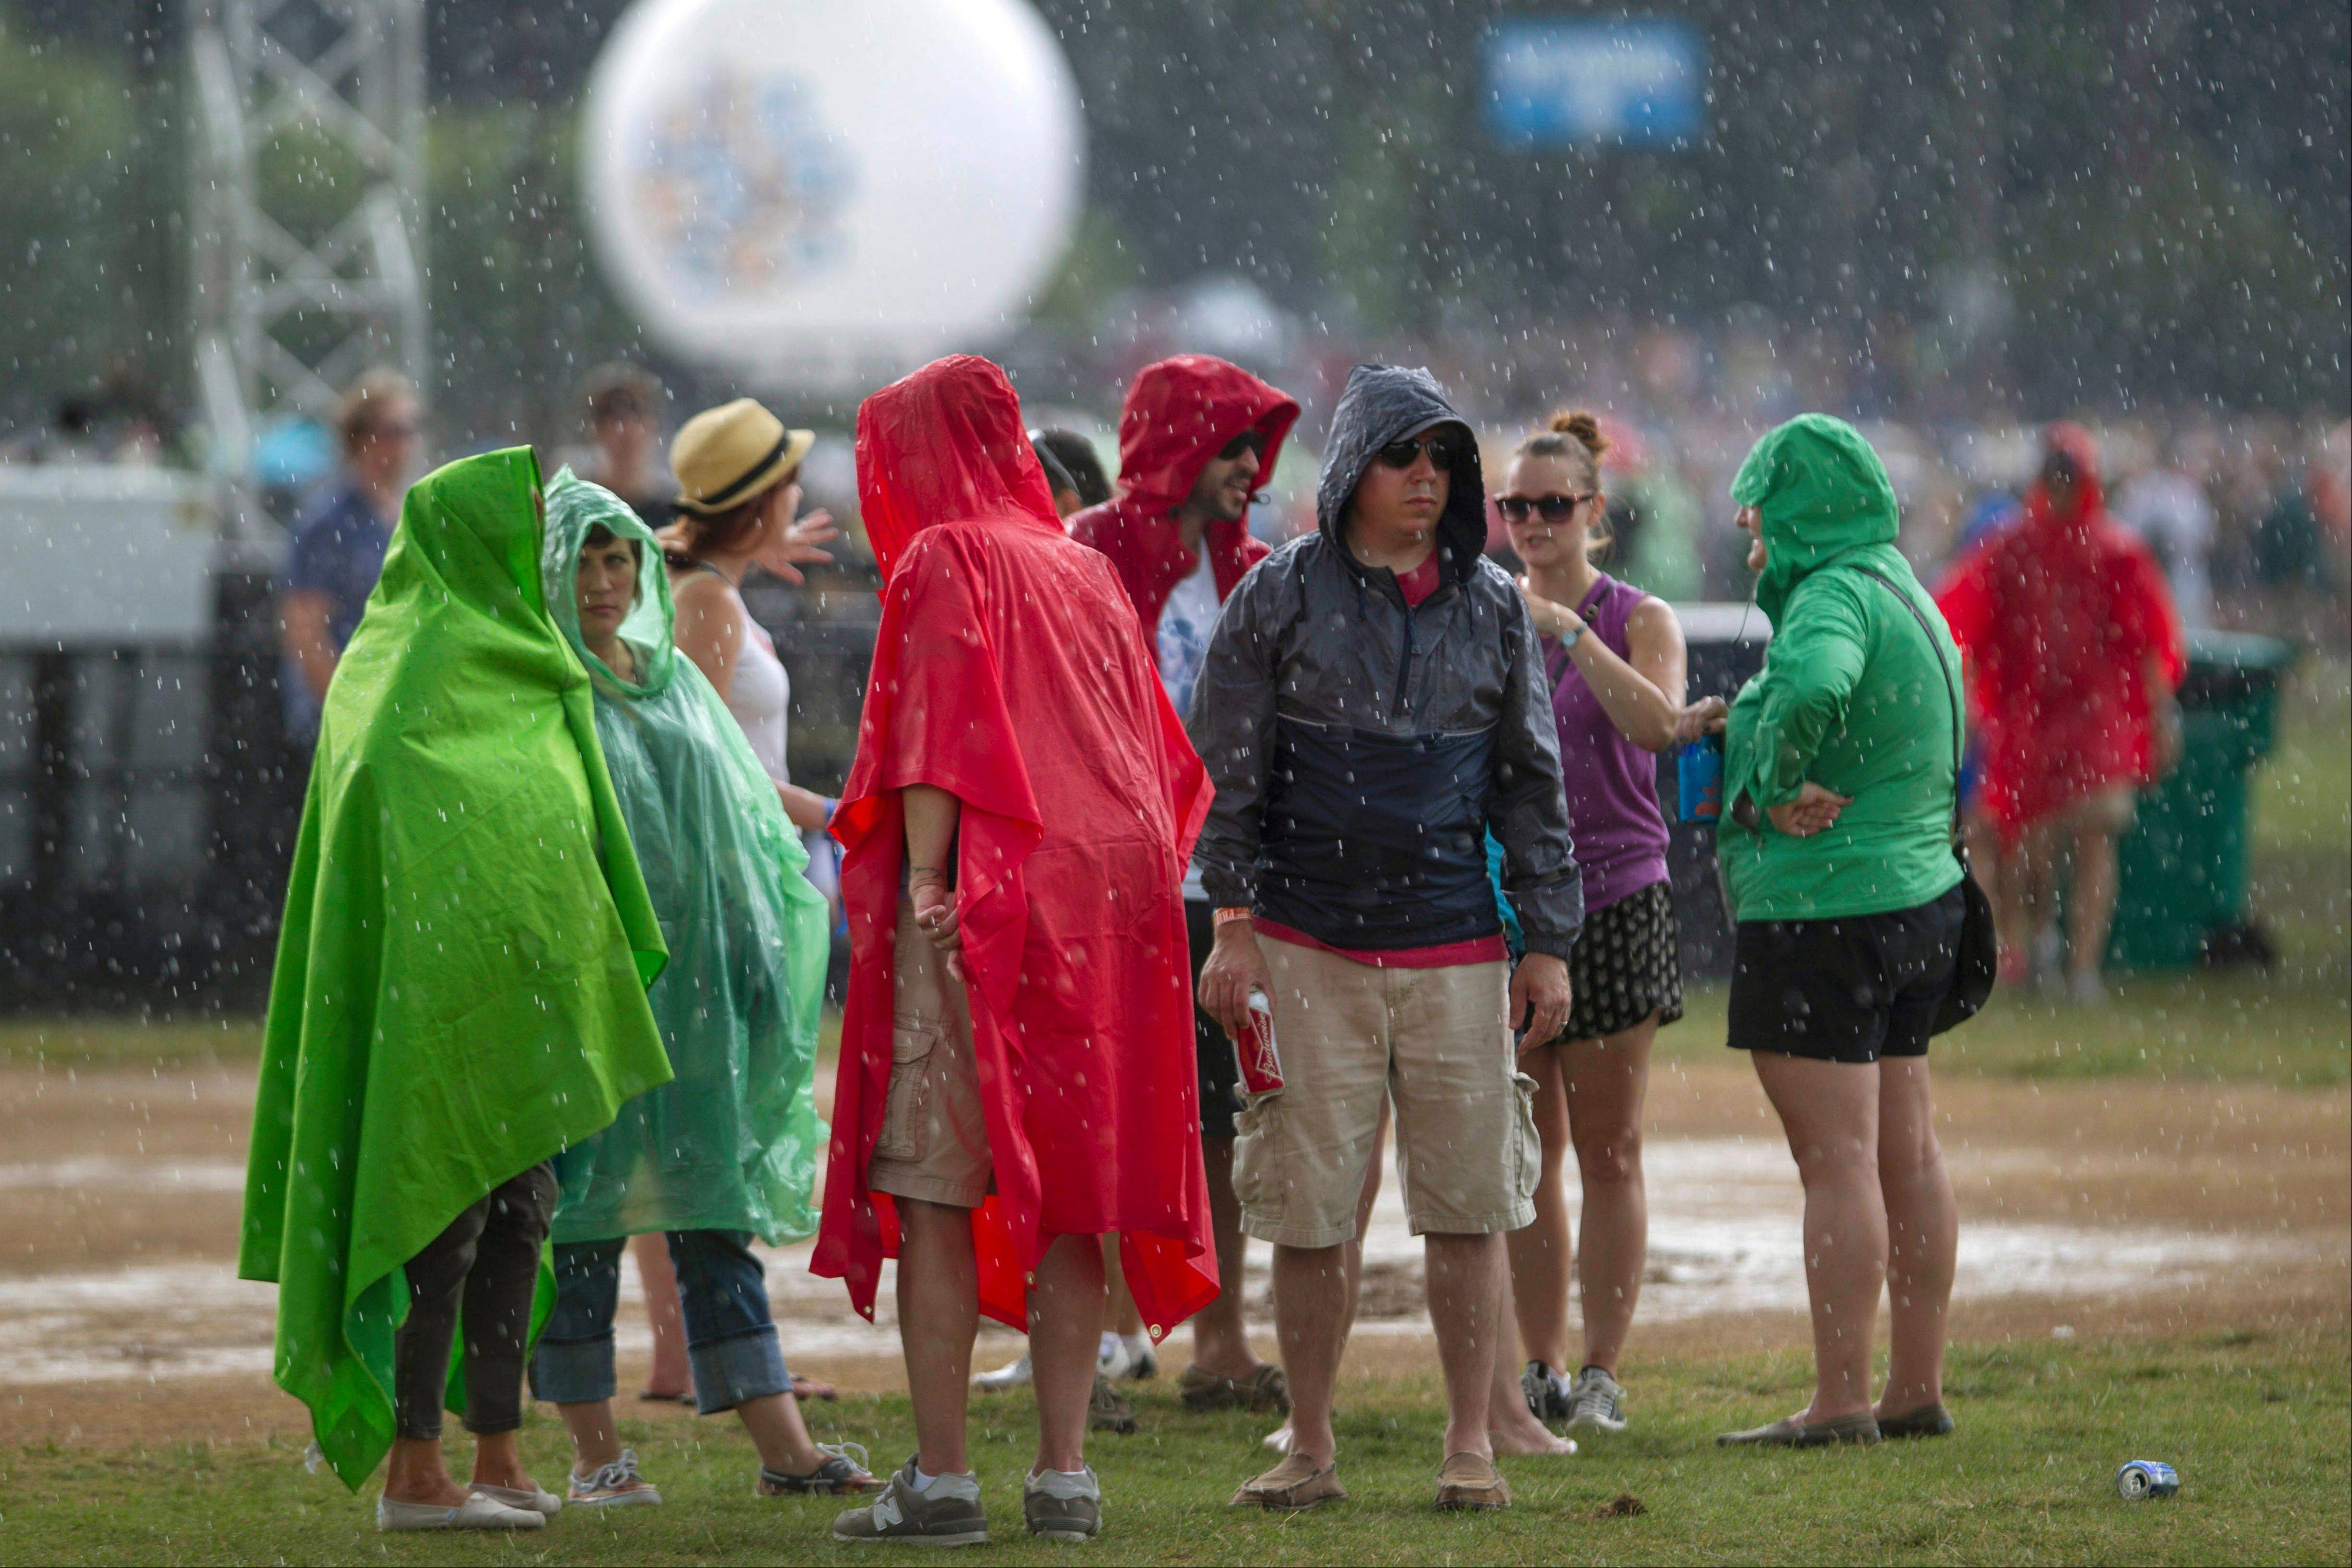 Festival attendees stand in ponchos during a brief rain storm at the Lollapalooza Festival in Chicago, Friday, Aug. 2, 2013. The more than two-decade-old festival opens Friday in Chicago's lakefront Grant Park.